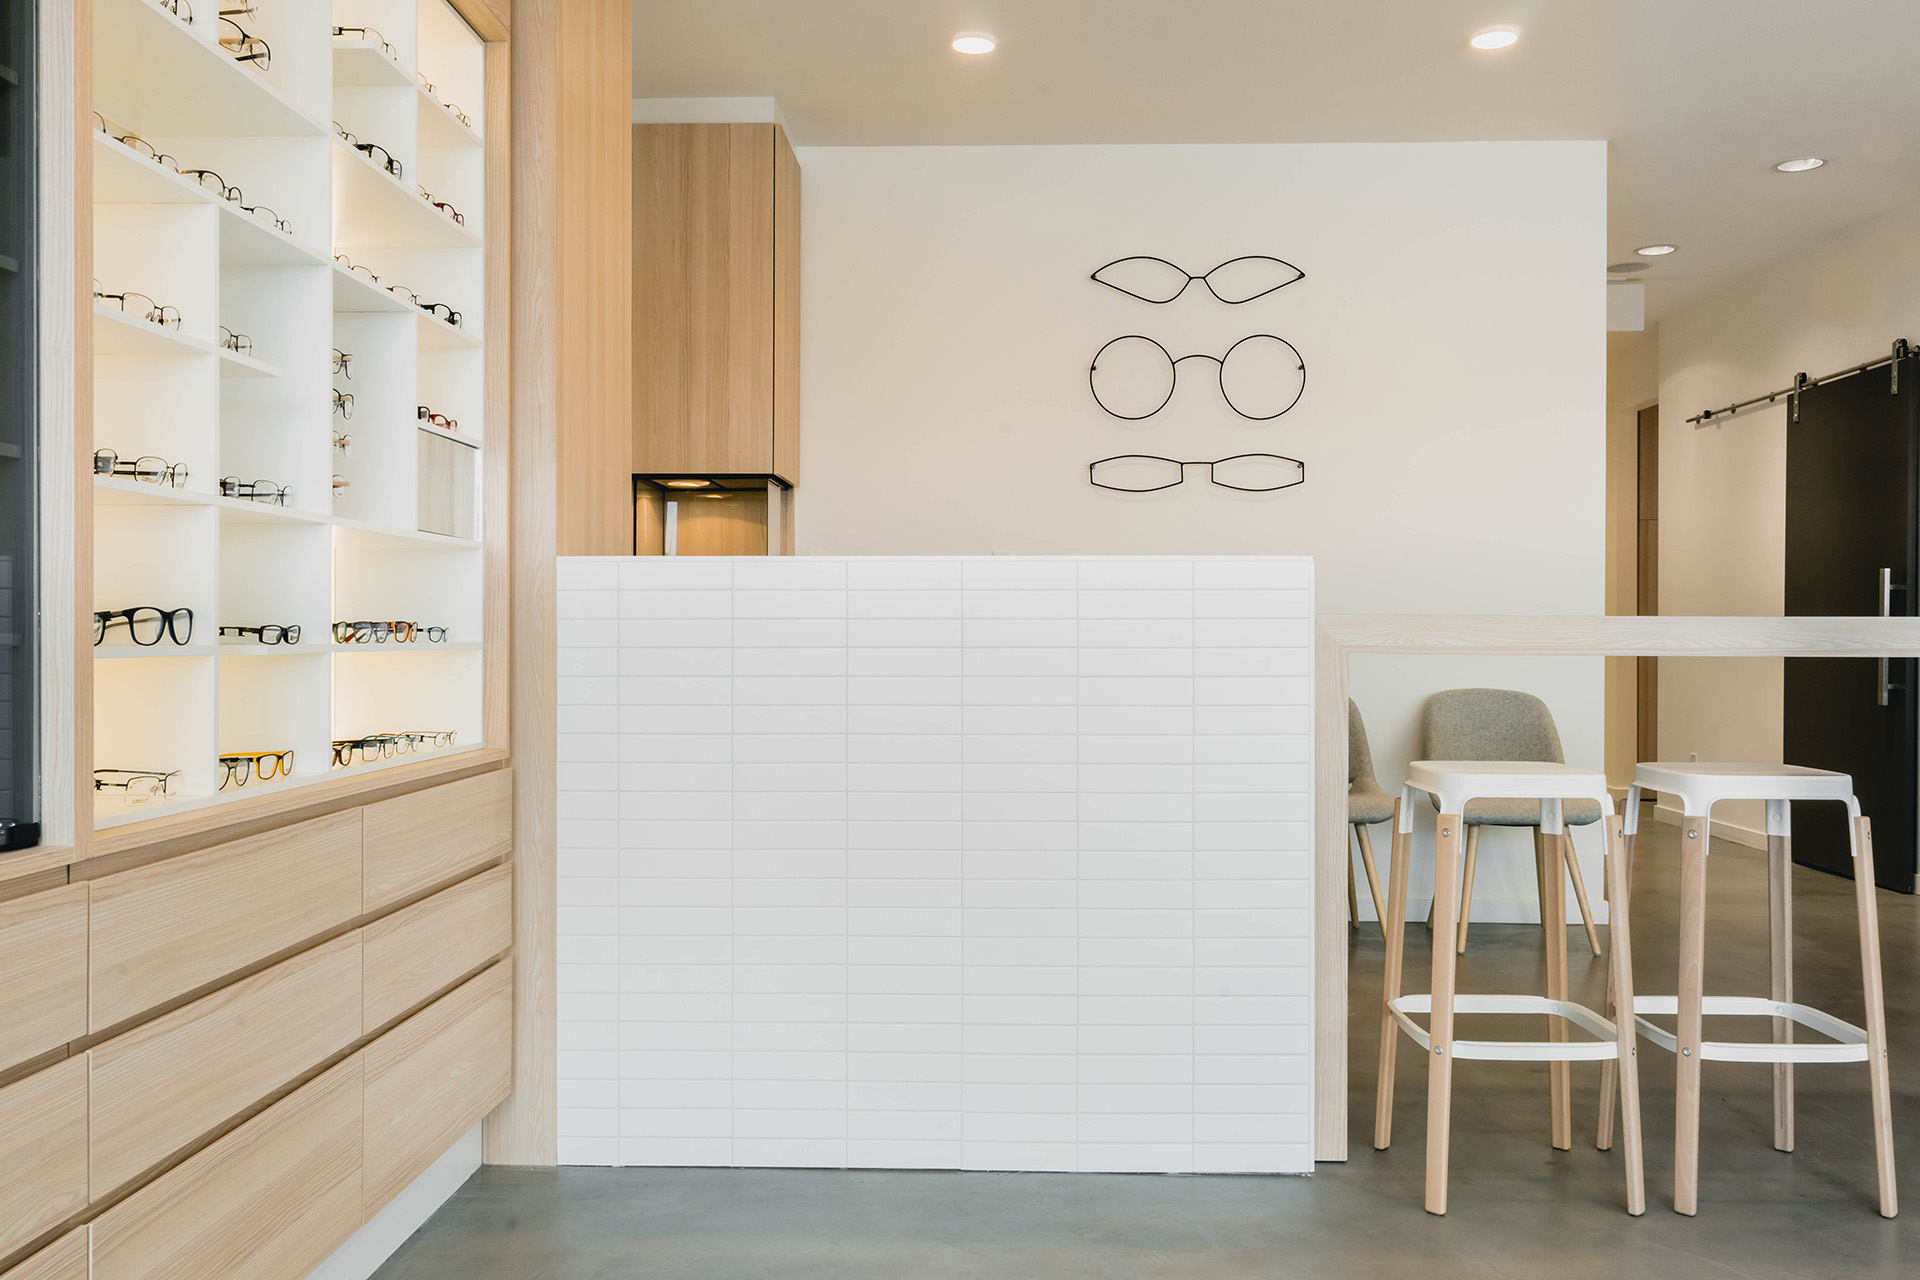 Arborlea Developments - Boardwalk Optometry - Guildford